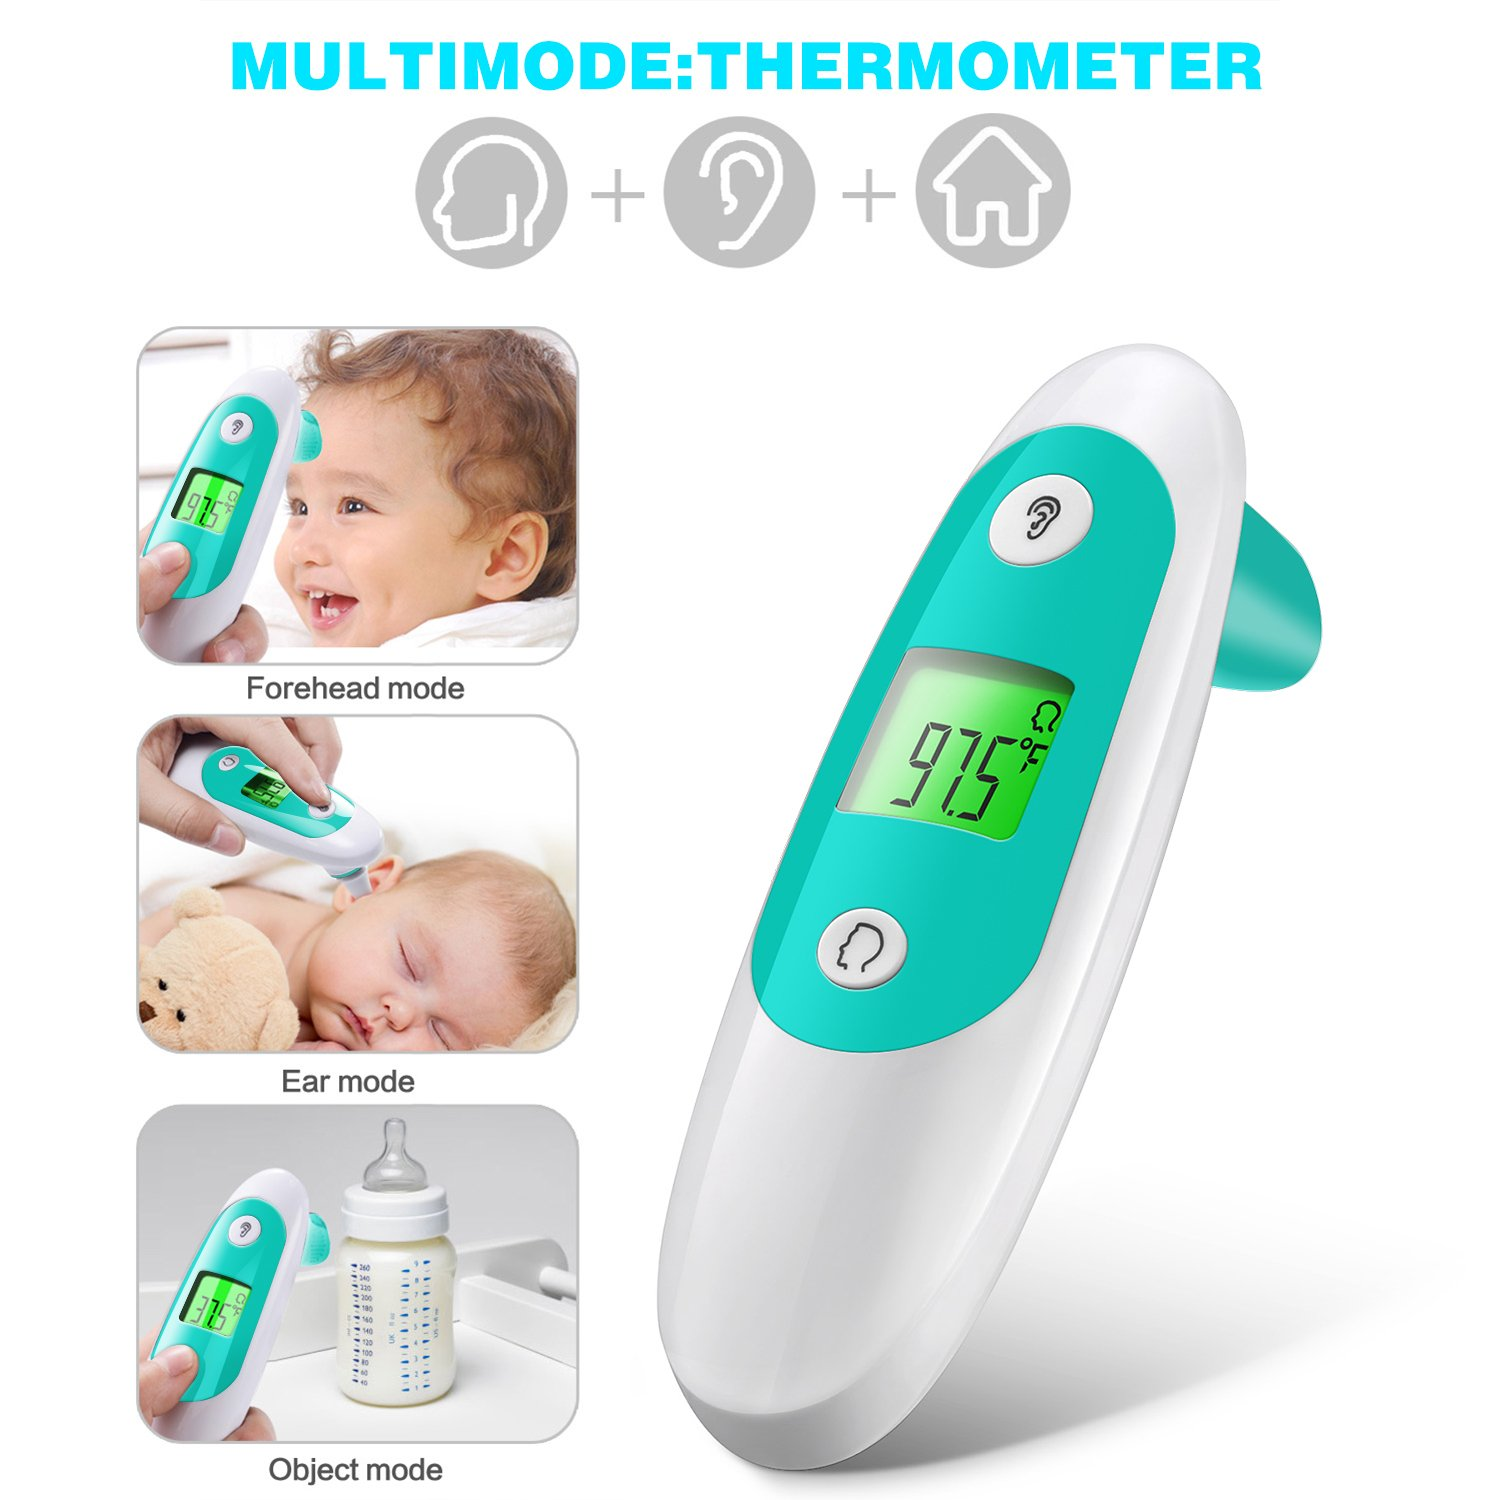 Baby Thermometer, Accurate Forehead Thermometer with Ear Mode, Digital Clinical Thermometer for Baby, Toddler and Adults with with FDA Approved by APOLLED (Image #9)